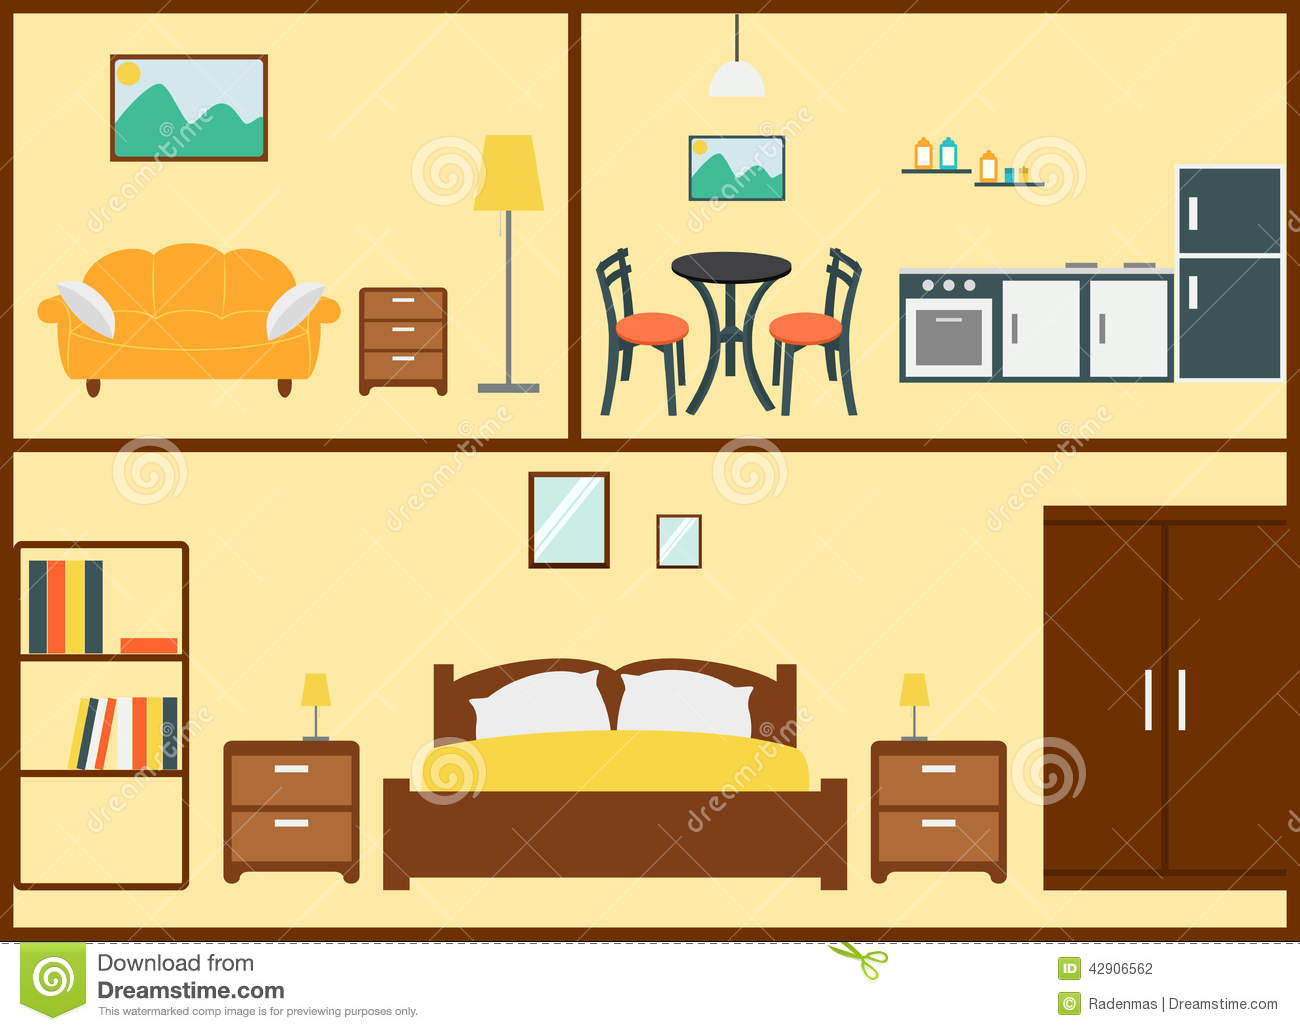 Home interior design stock vector illustration of for Make interior design online